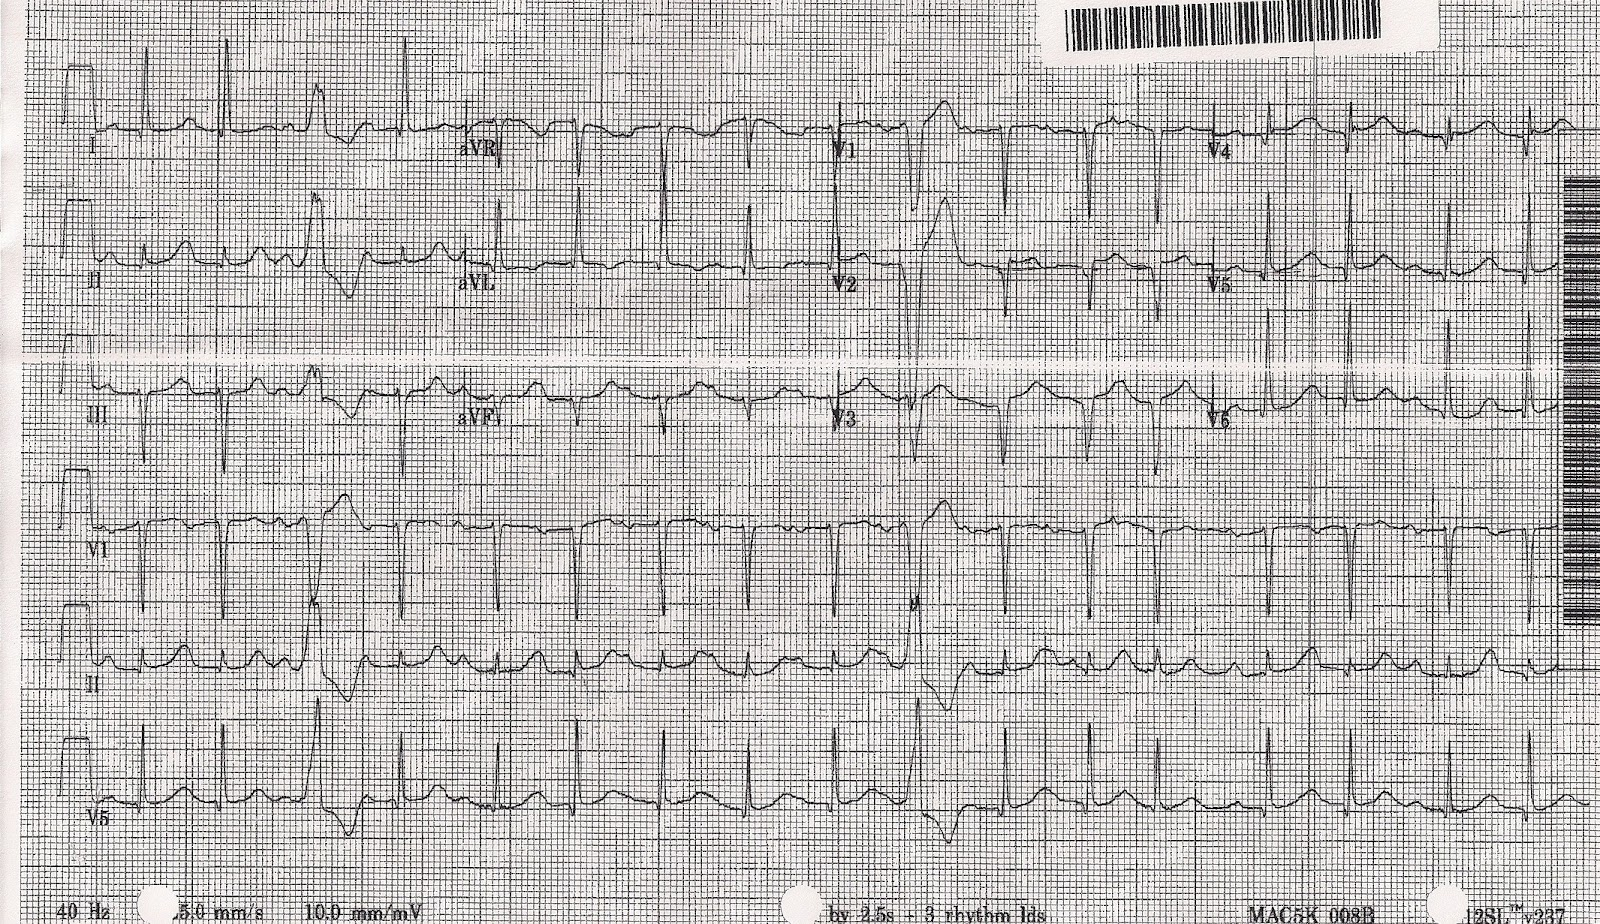 Ecgs For Ems March